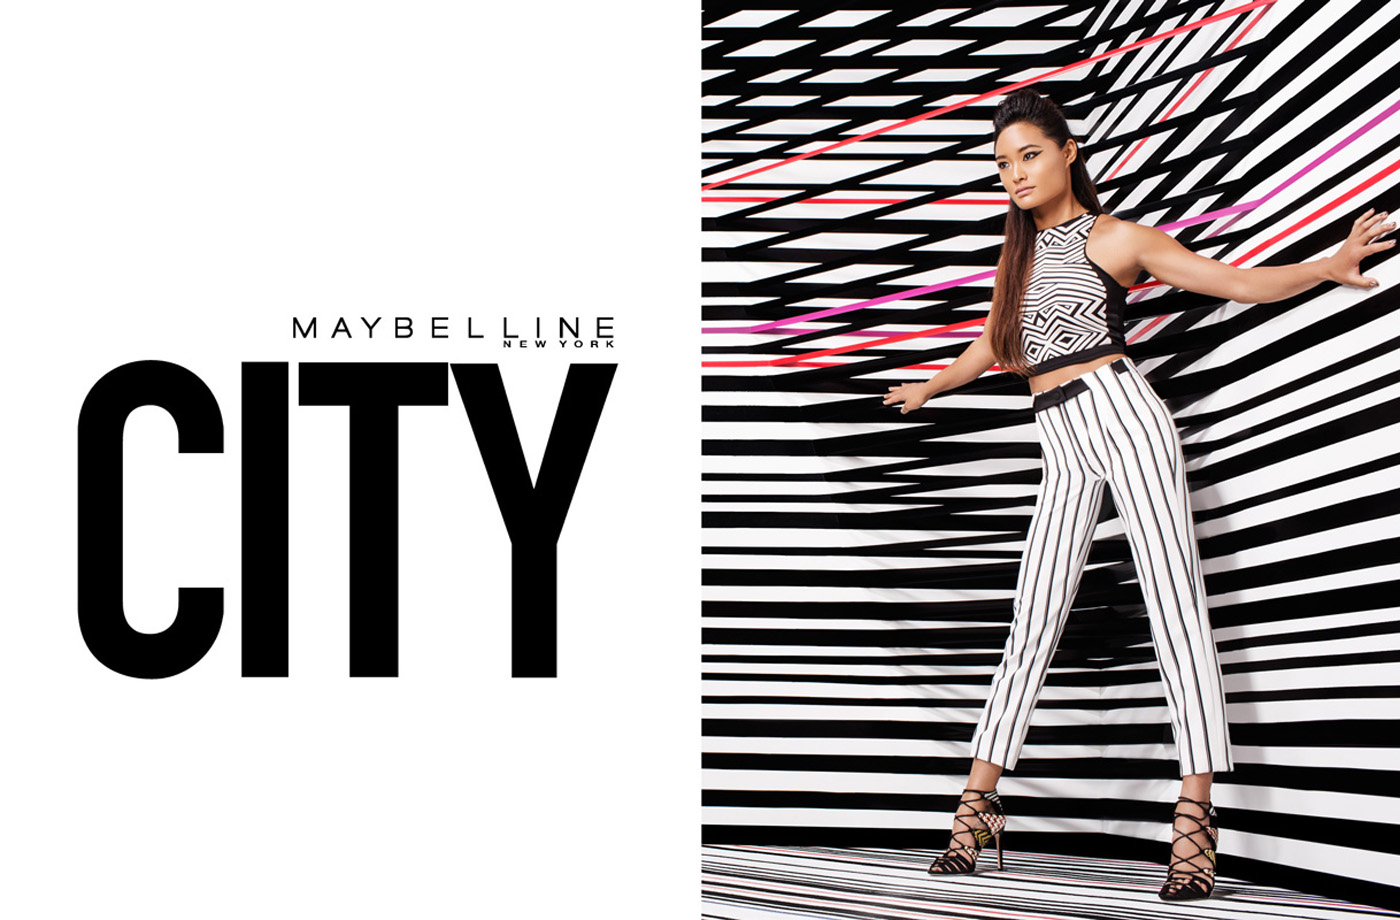 Complice -  Maybelline_CITY_02.jpg